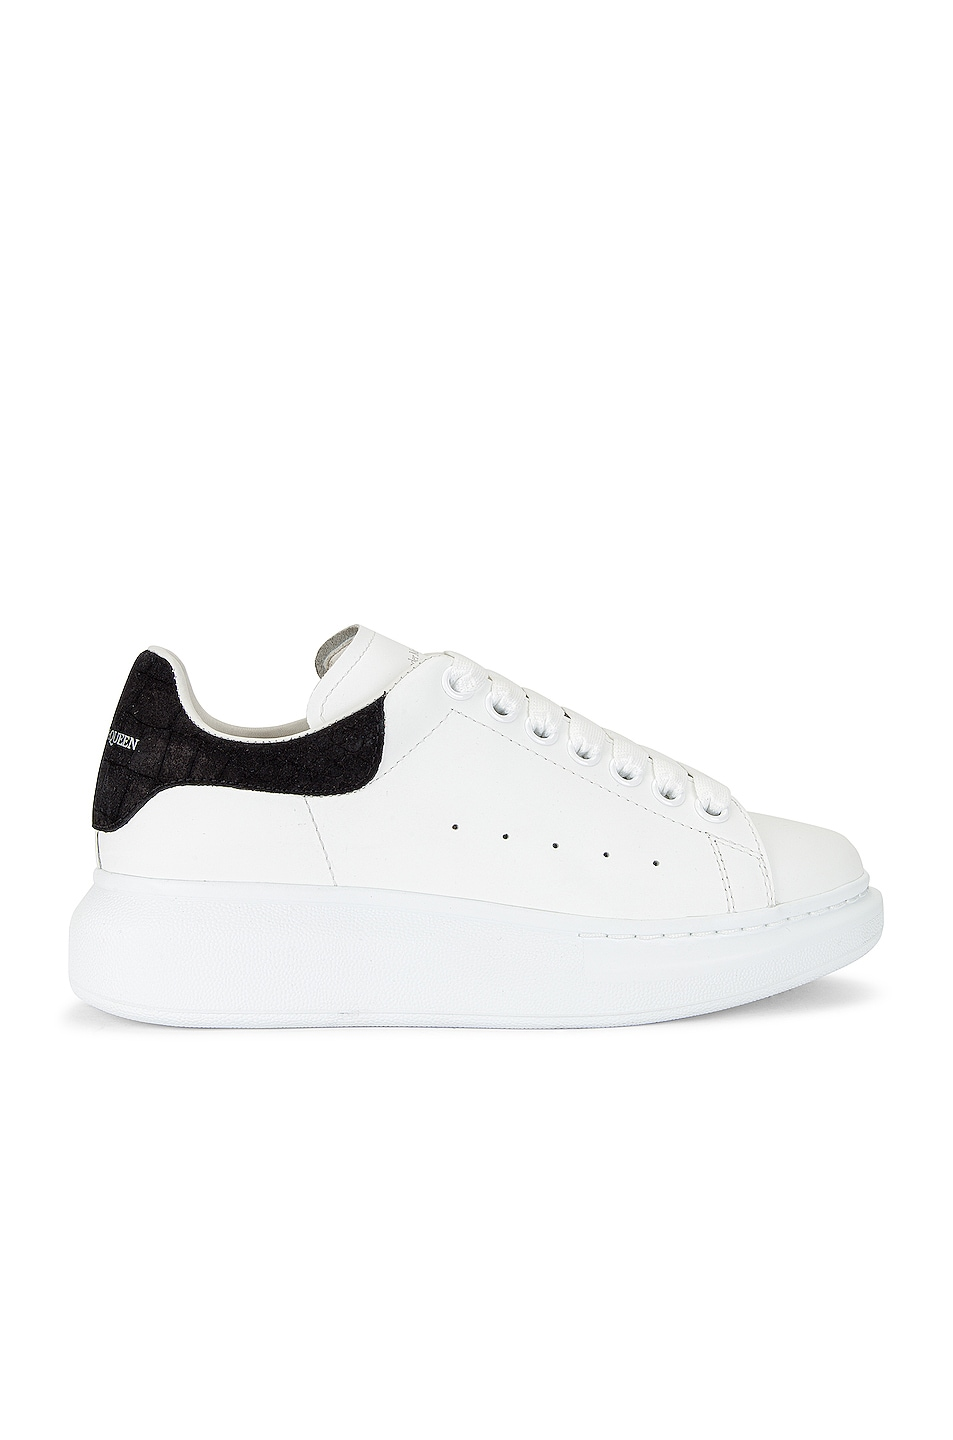 Image 1 of Alexander McQueen Leather & Rubber Sneakers in White & Black